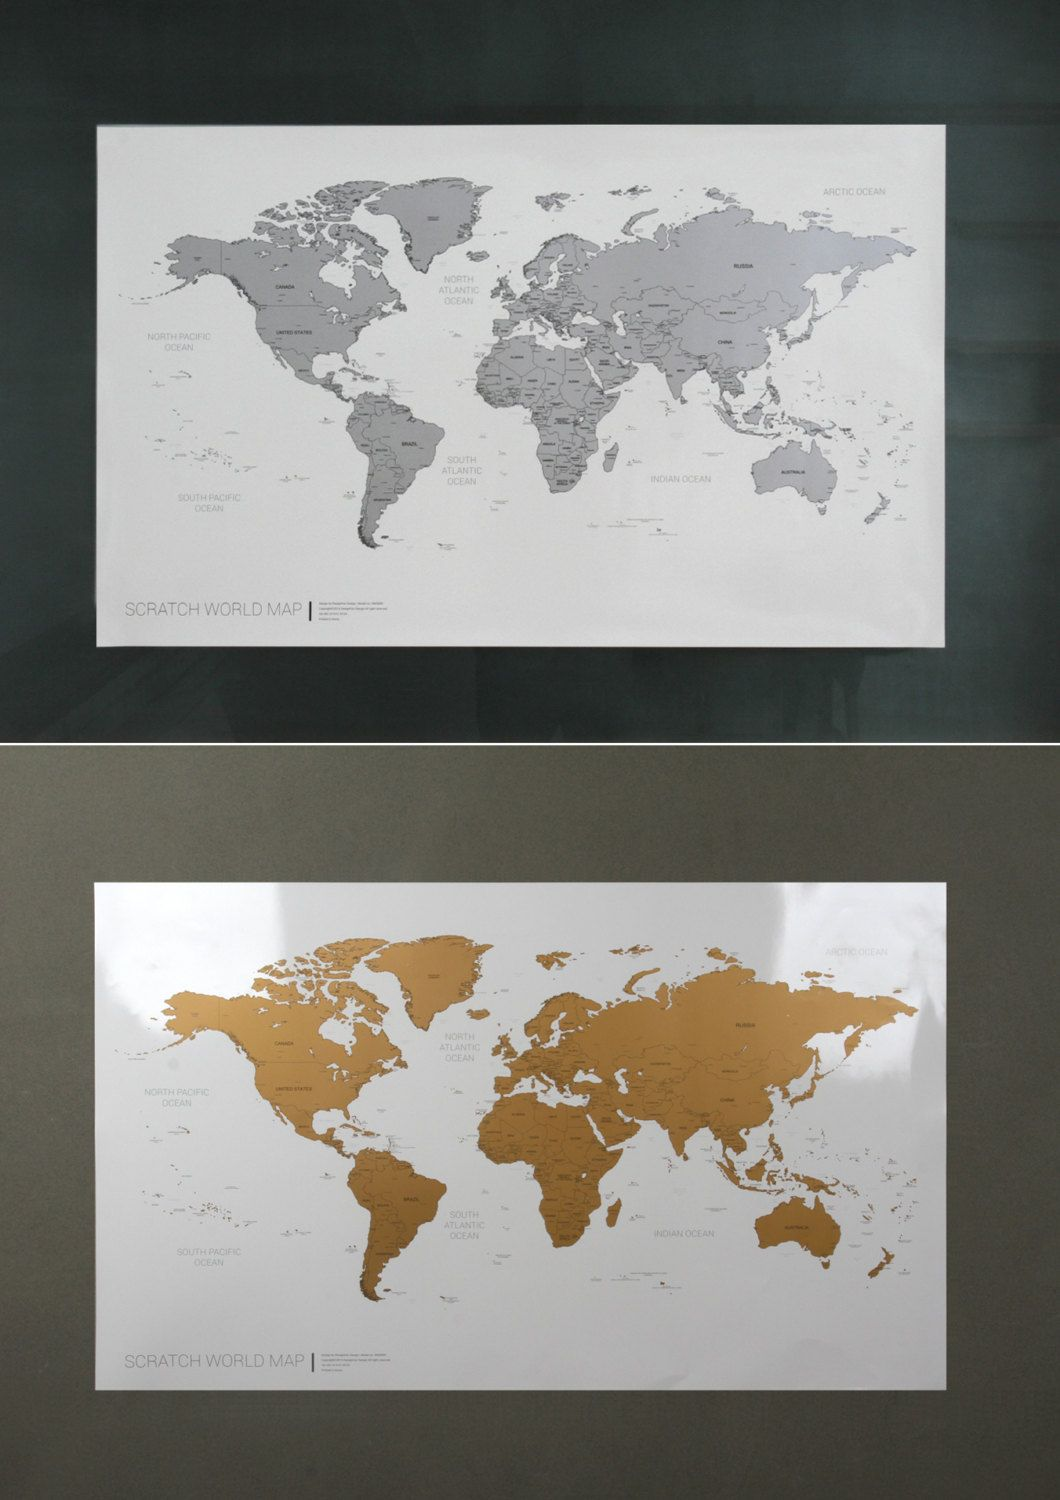 Scratch Off World Map Poster.Scratch Off World Map Poster Silver Gold